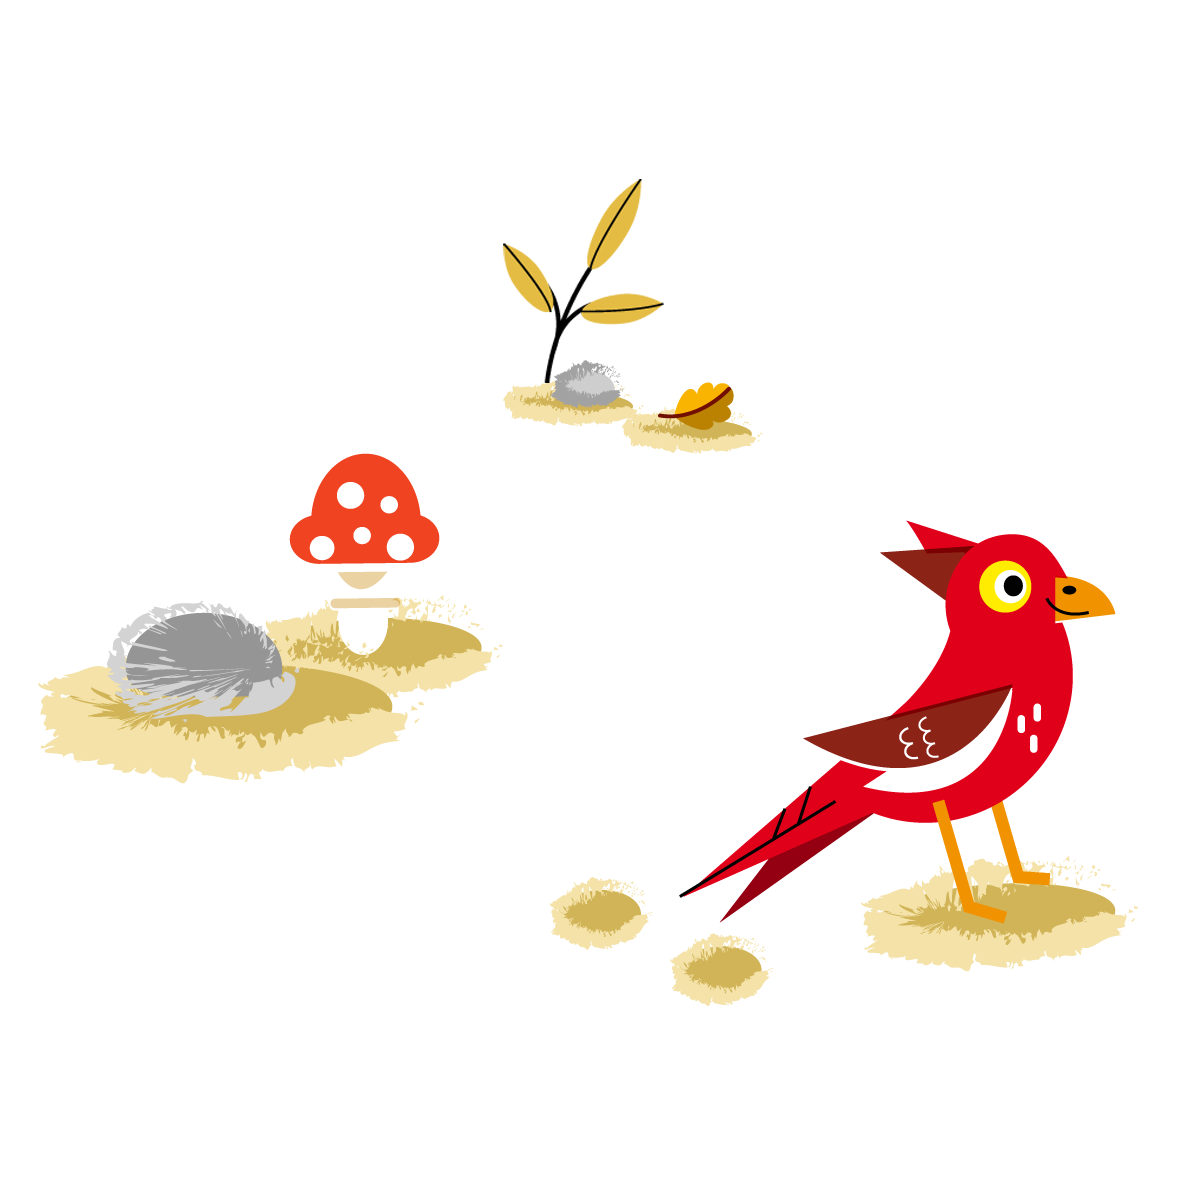 Birds in the woods - Vector Illustration © Emeline Barrea, All rights reserved